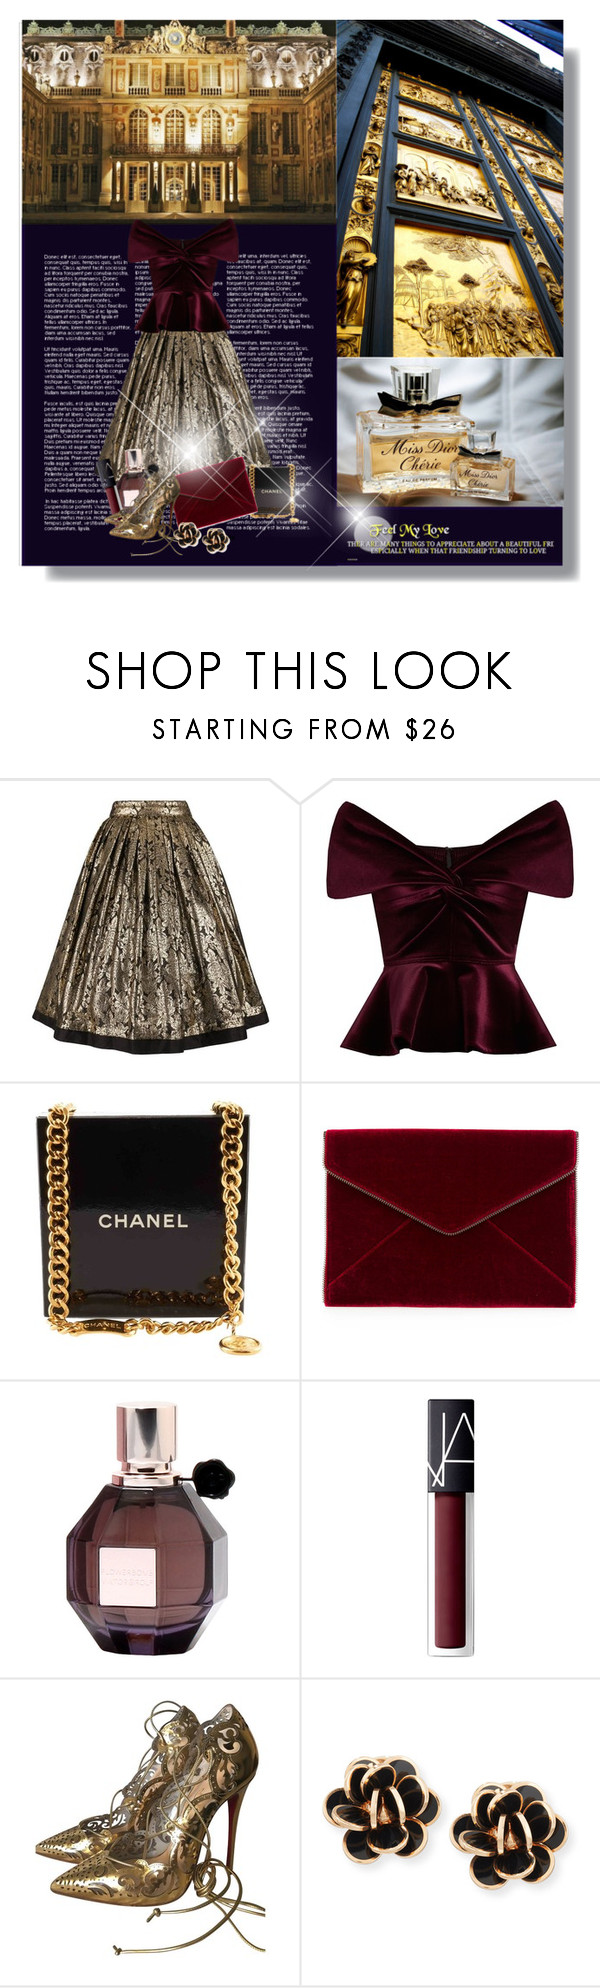 """Golden time"" by beograd-love ❤ liked on Polyvore featuring Versace, Emilio De La Morena, Chanel, Rebecca Minkoff, Viktor & Rolf, NARS Cosmetics, Christian Louboutin and Chantecler"